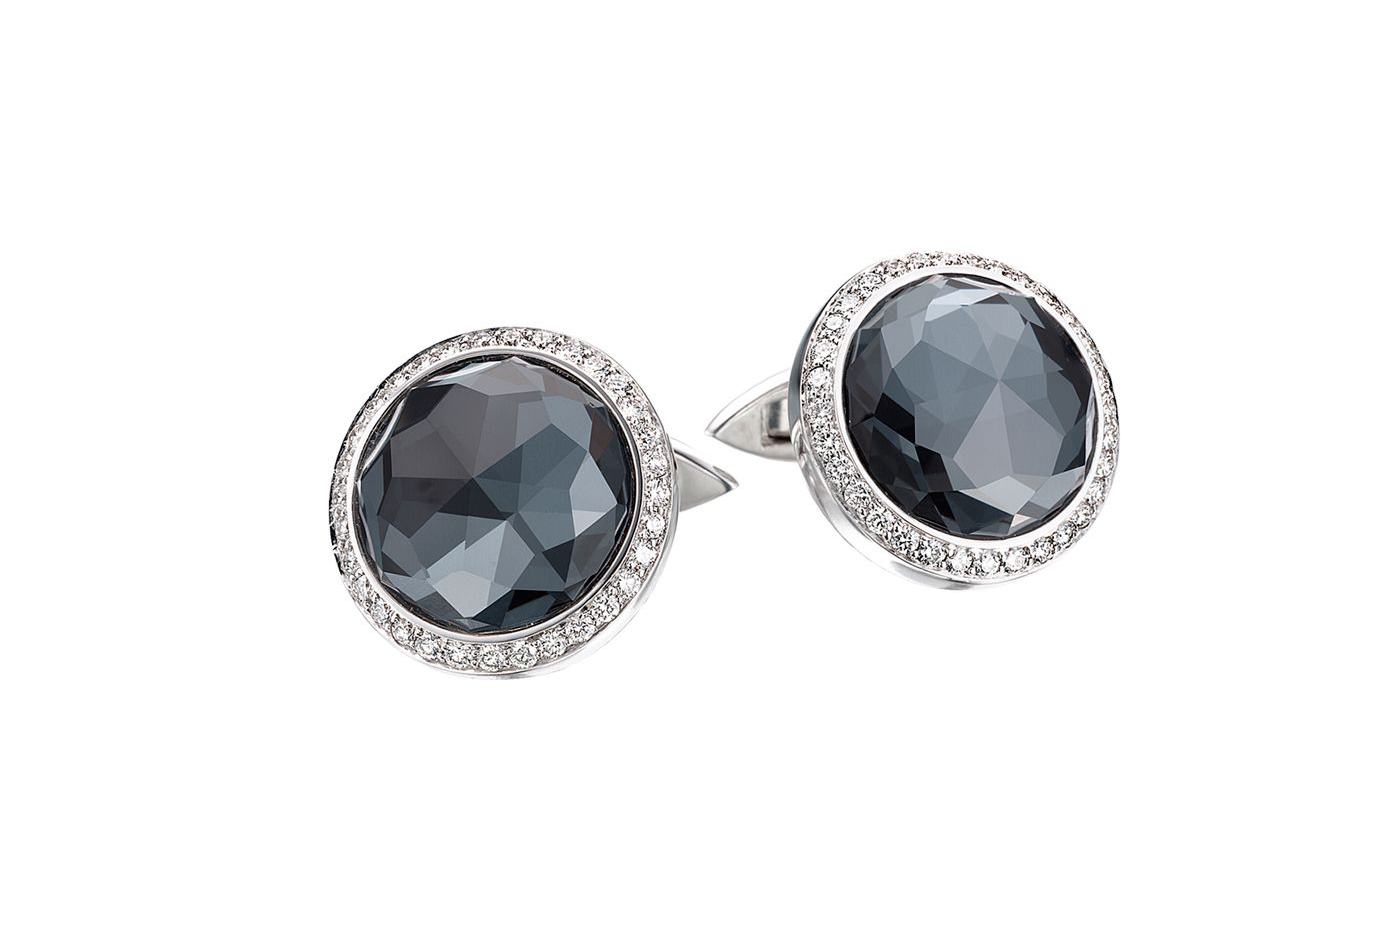 Stephen Webster 'Crystal Haze' cufflinks in white gold, topaz and diamonds